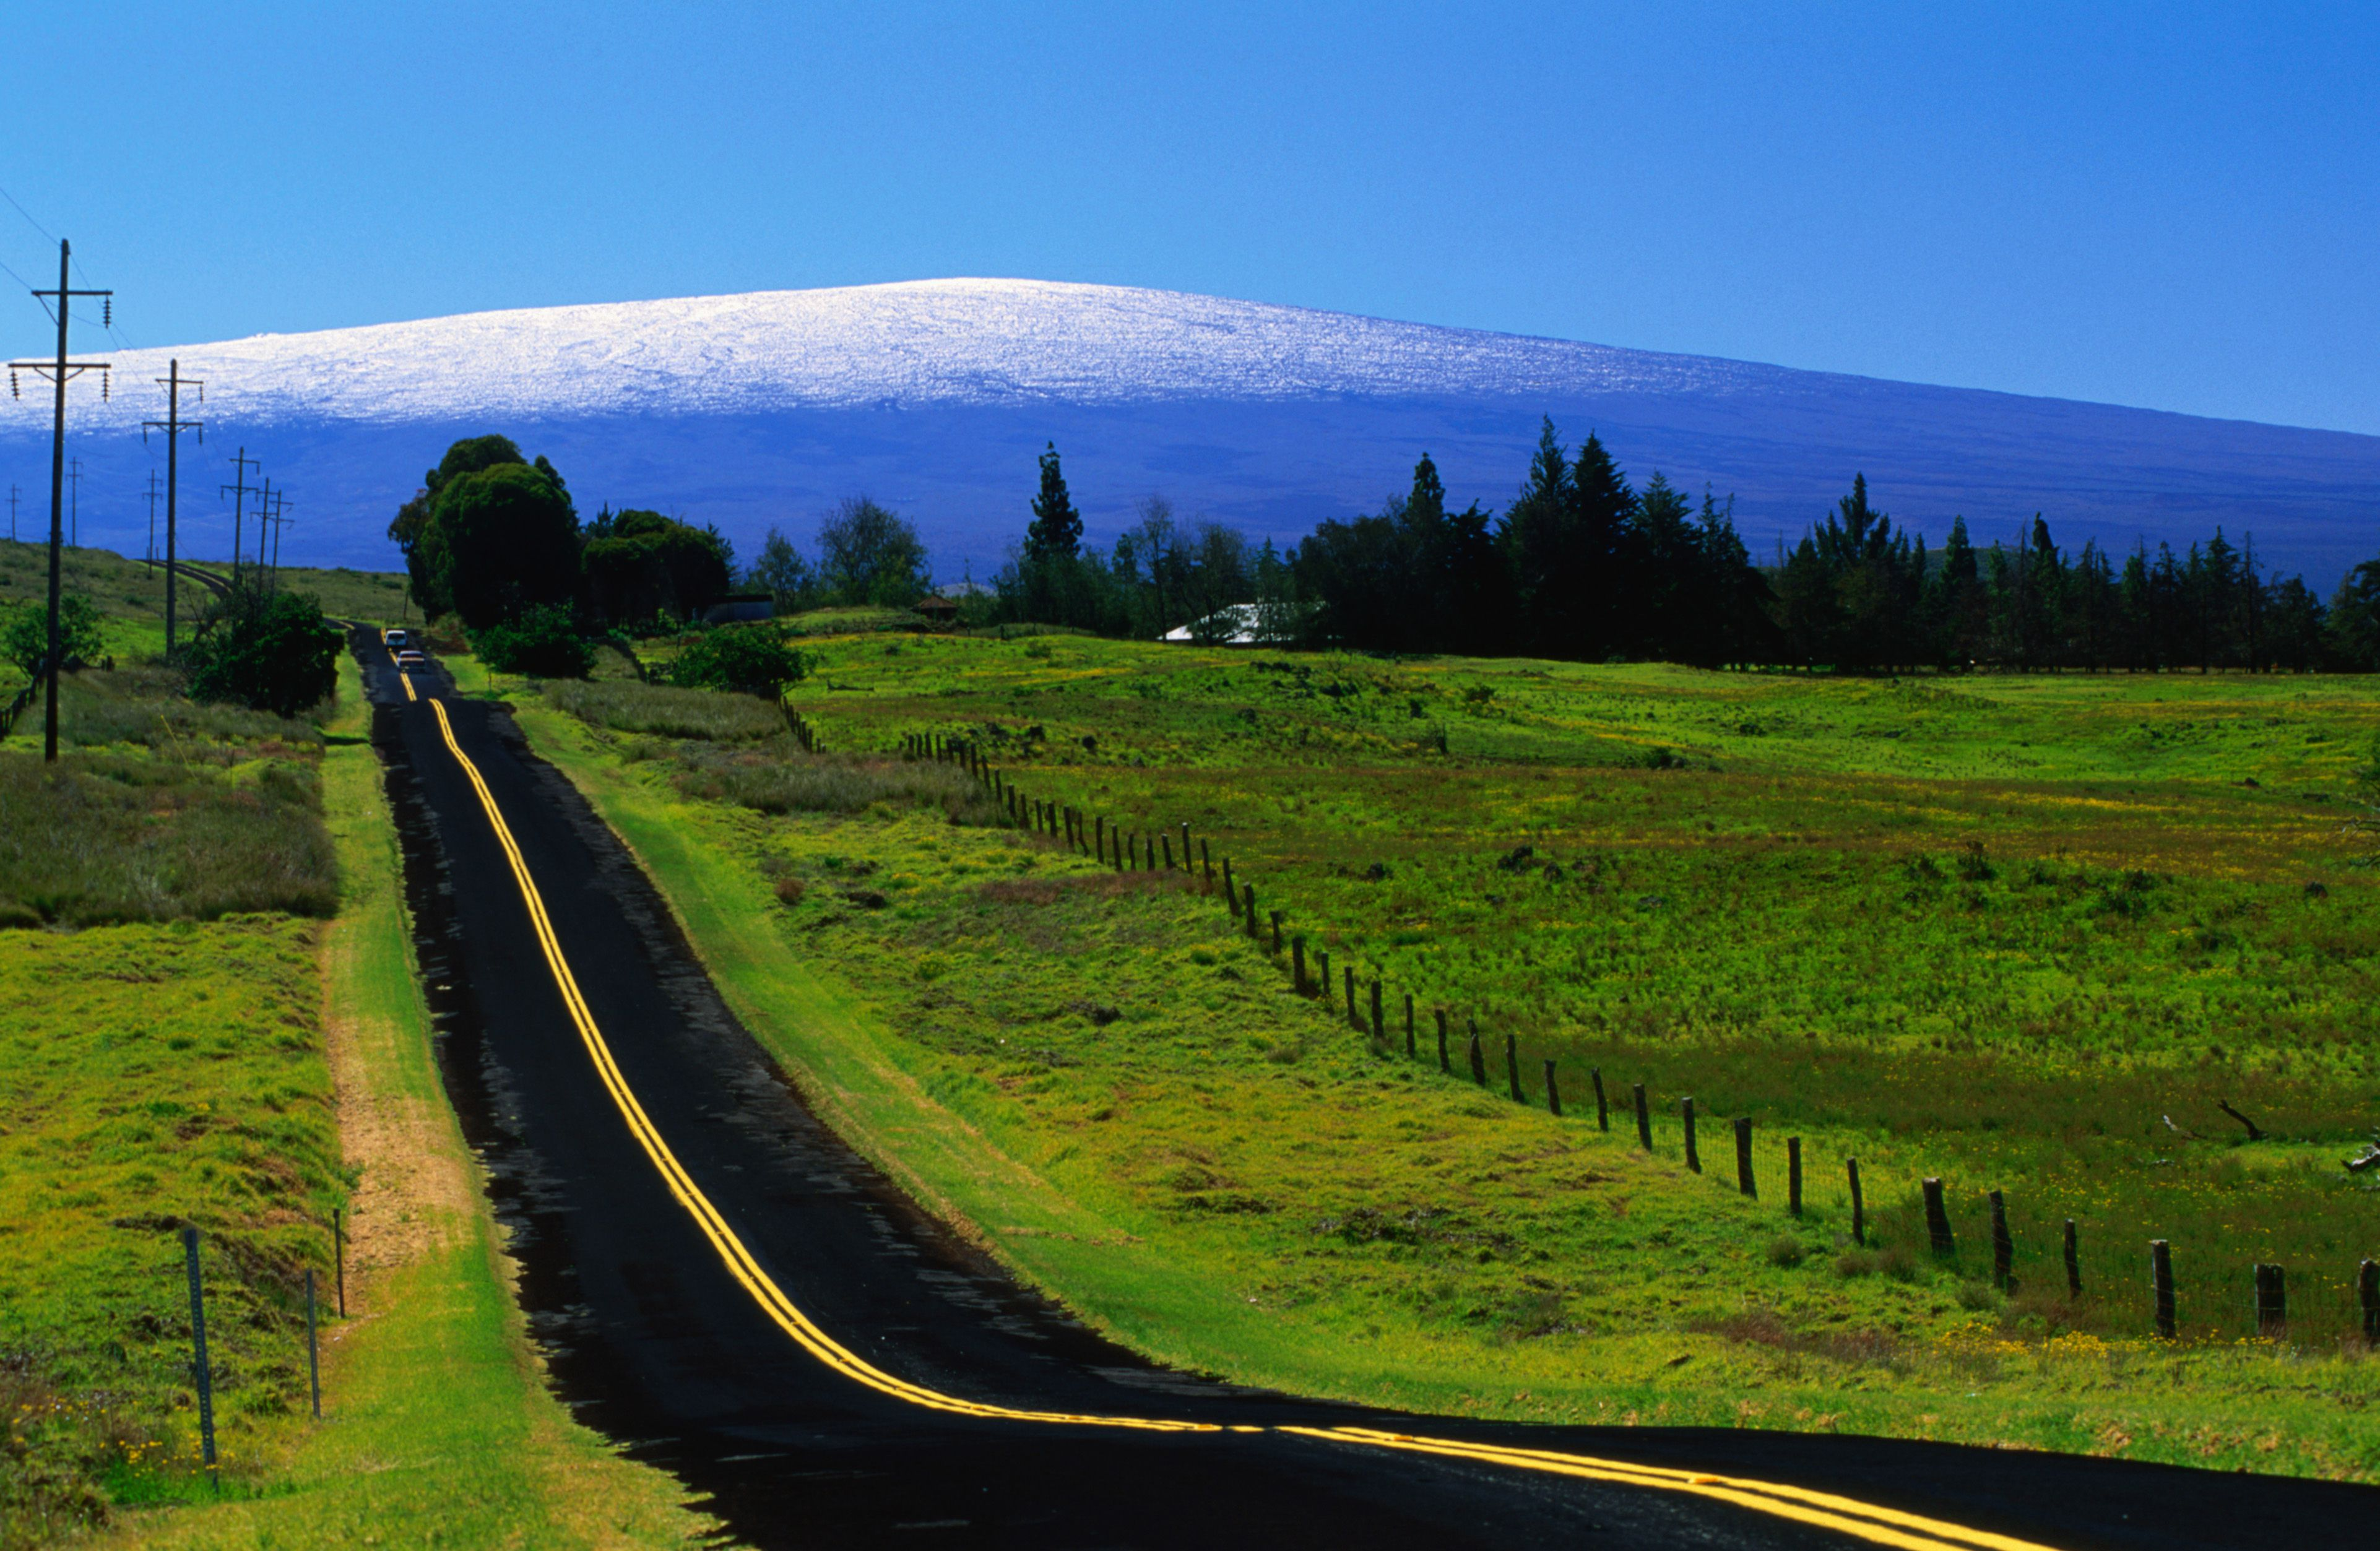 Mauna Loa: The Largest Active Shield Volcano on Earth